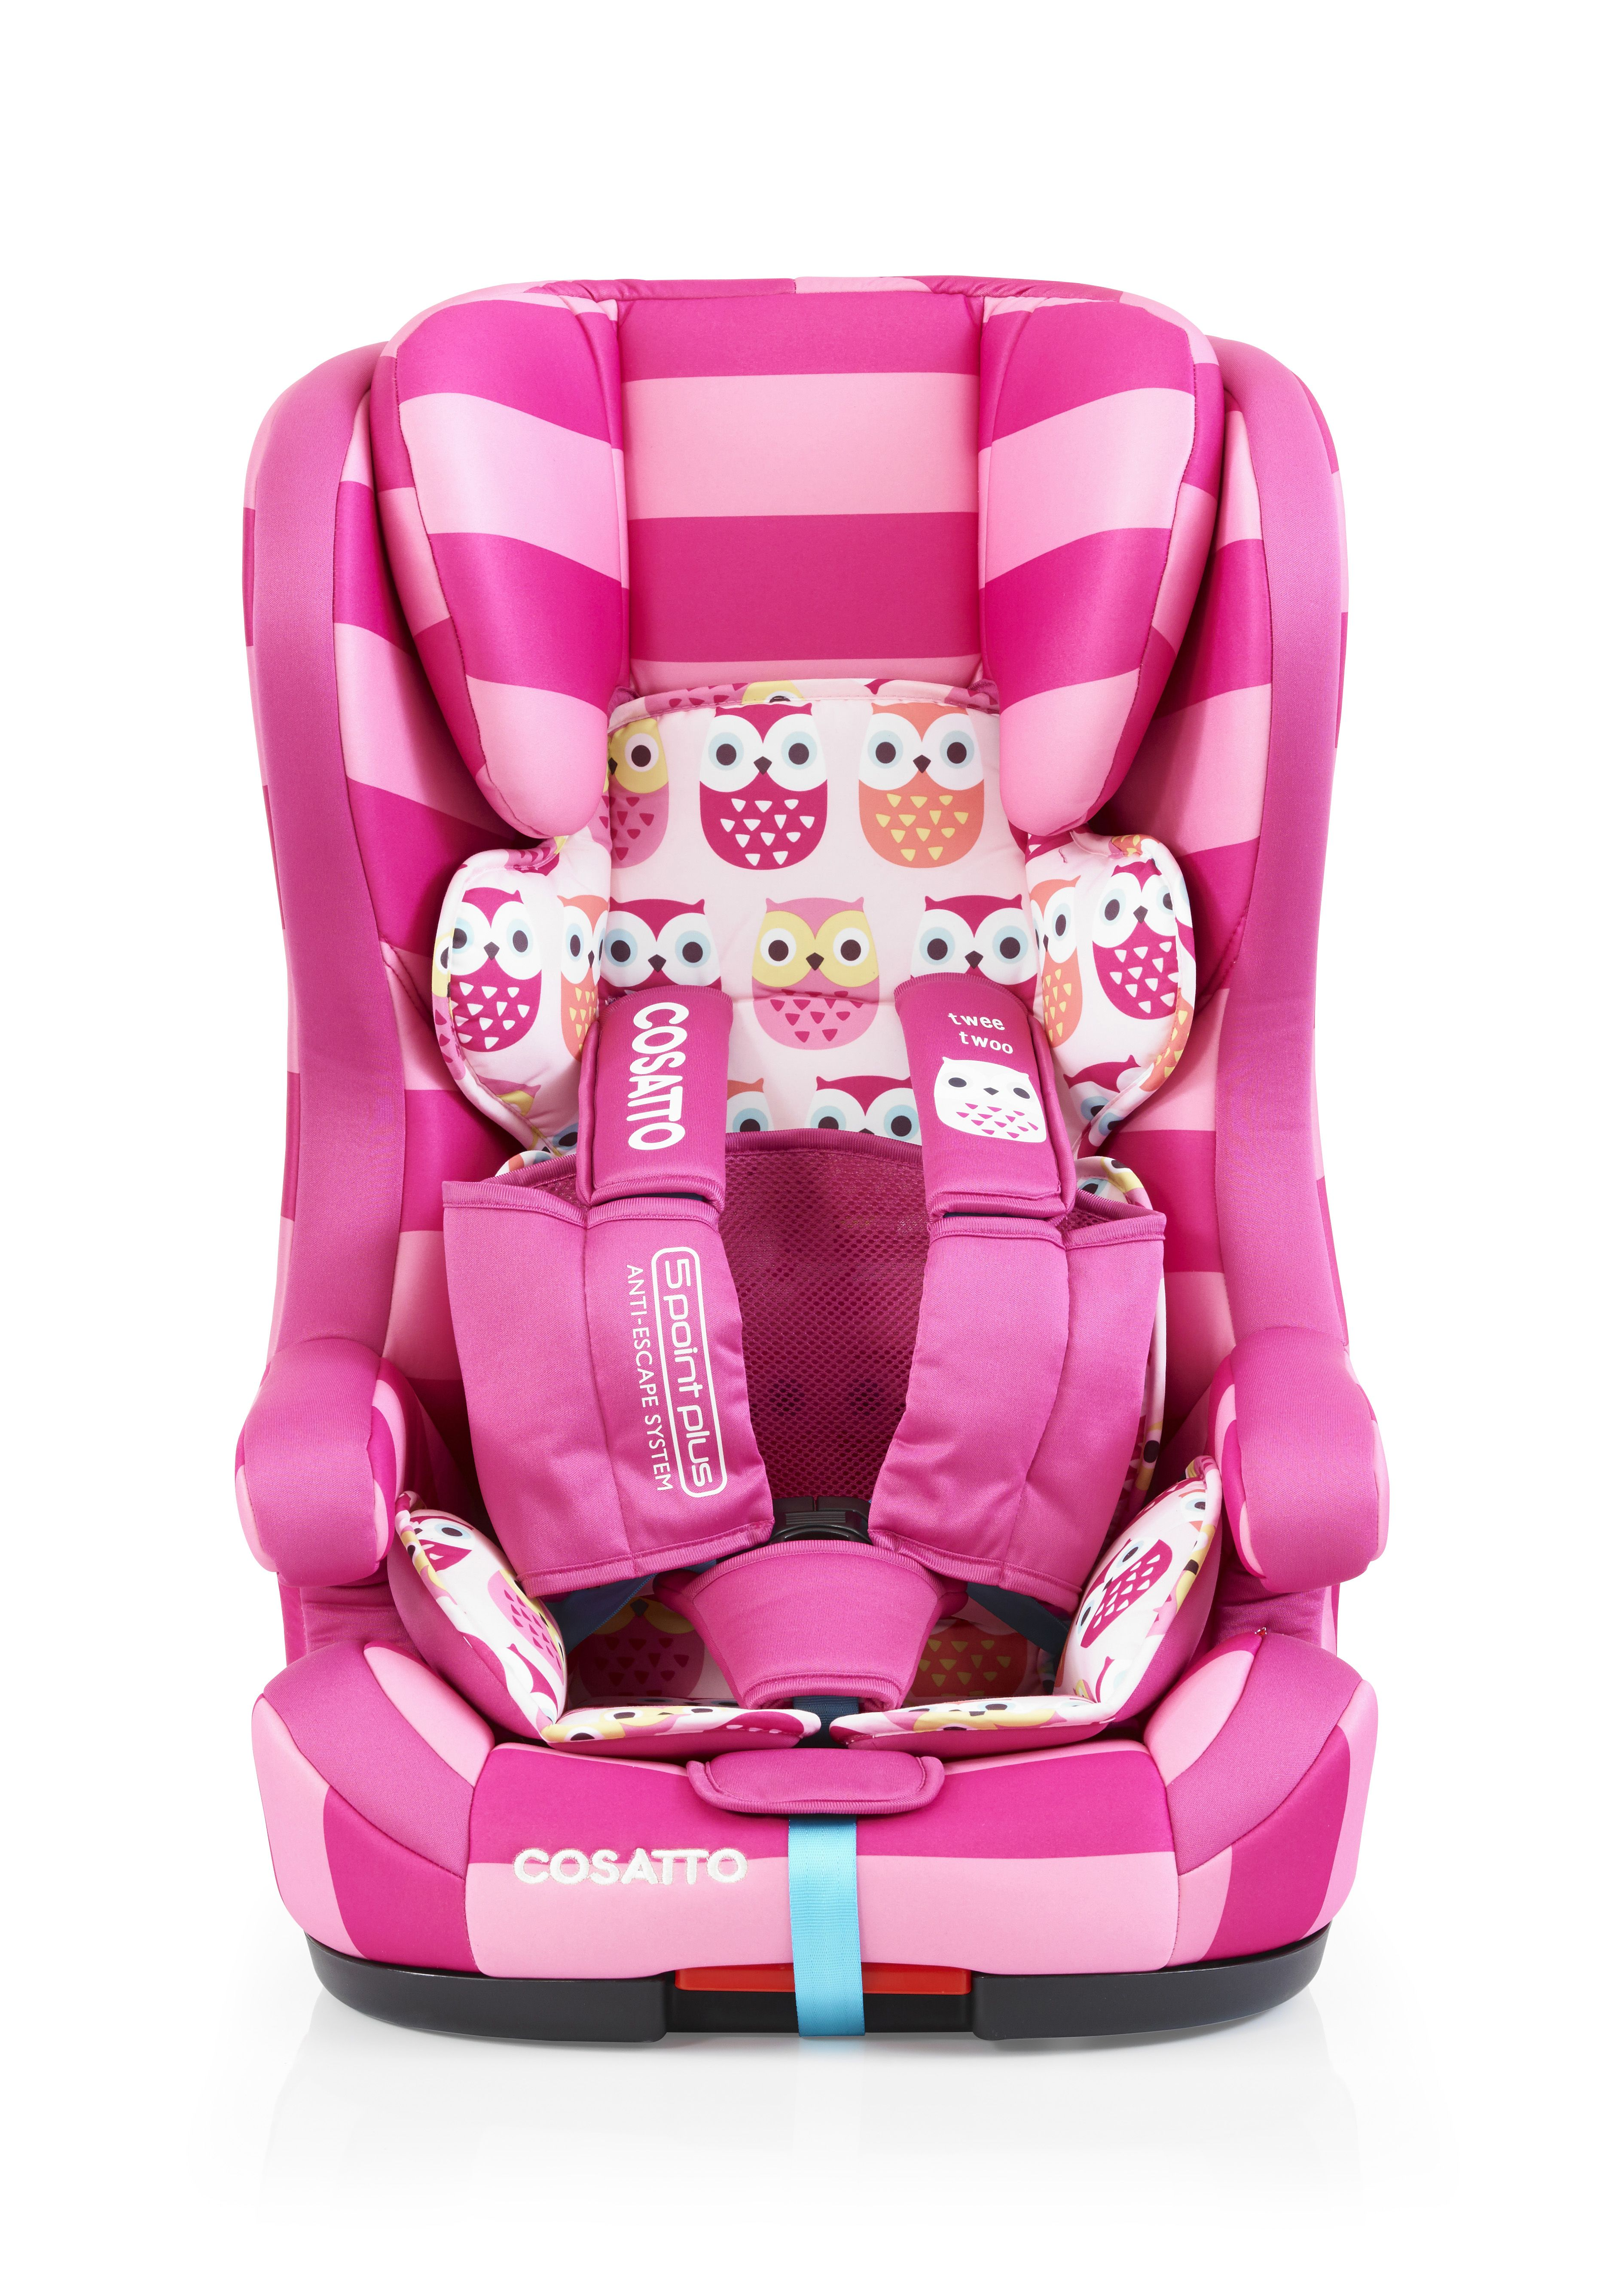 Cosatto Hubbub Isofix Group 123 in Twee Twoo Completely